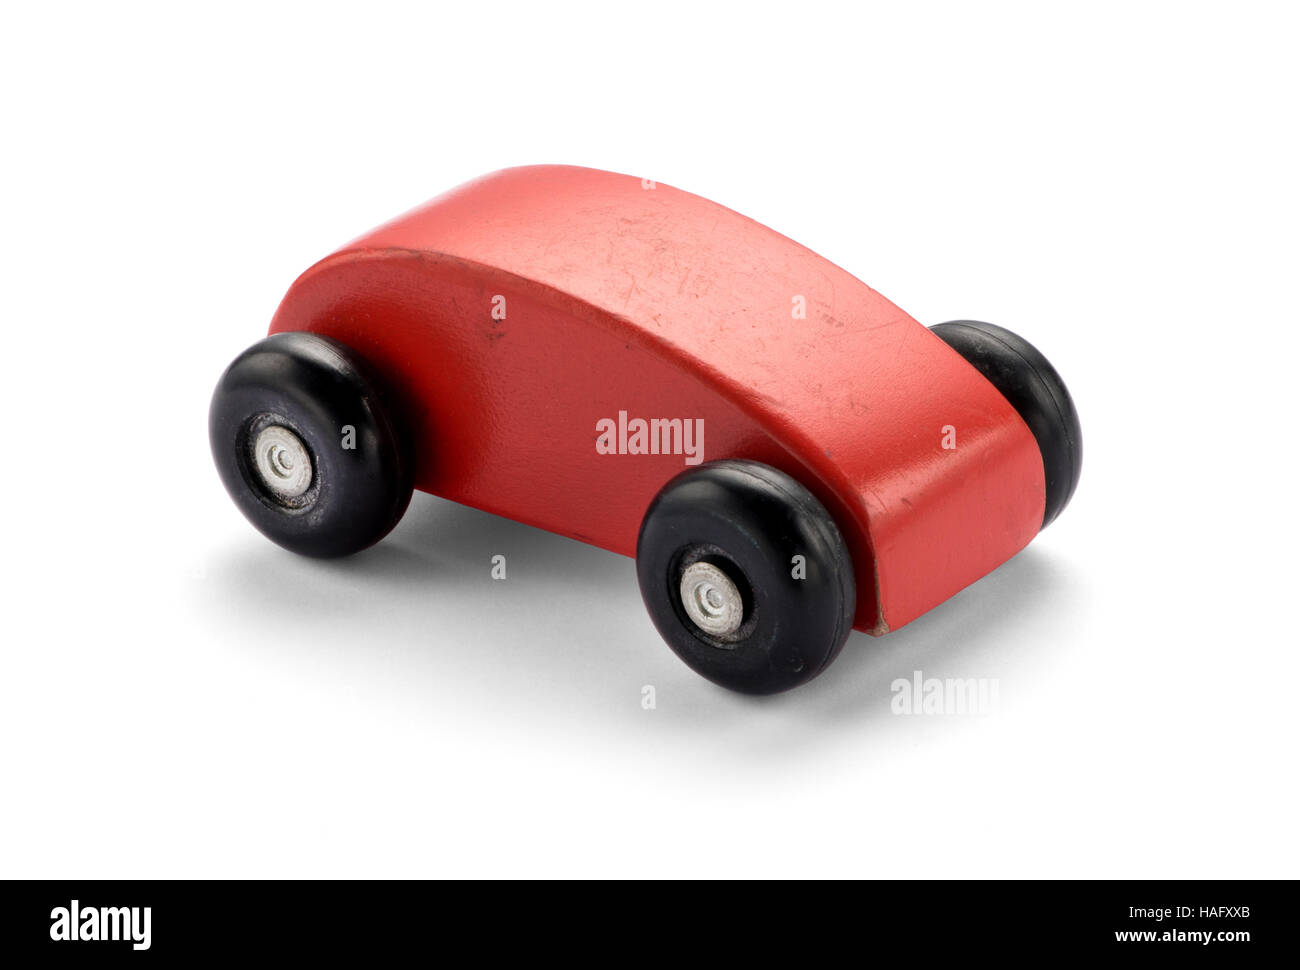 Simple stylized red wooden toy car with a curved design on large wheels in a high angle side view on white - Stock Image